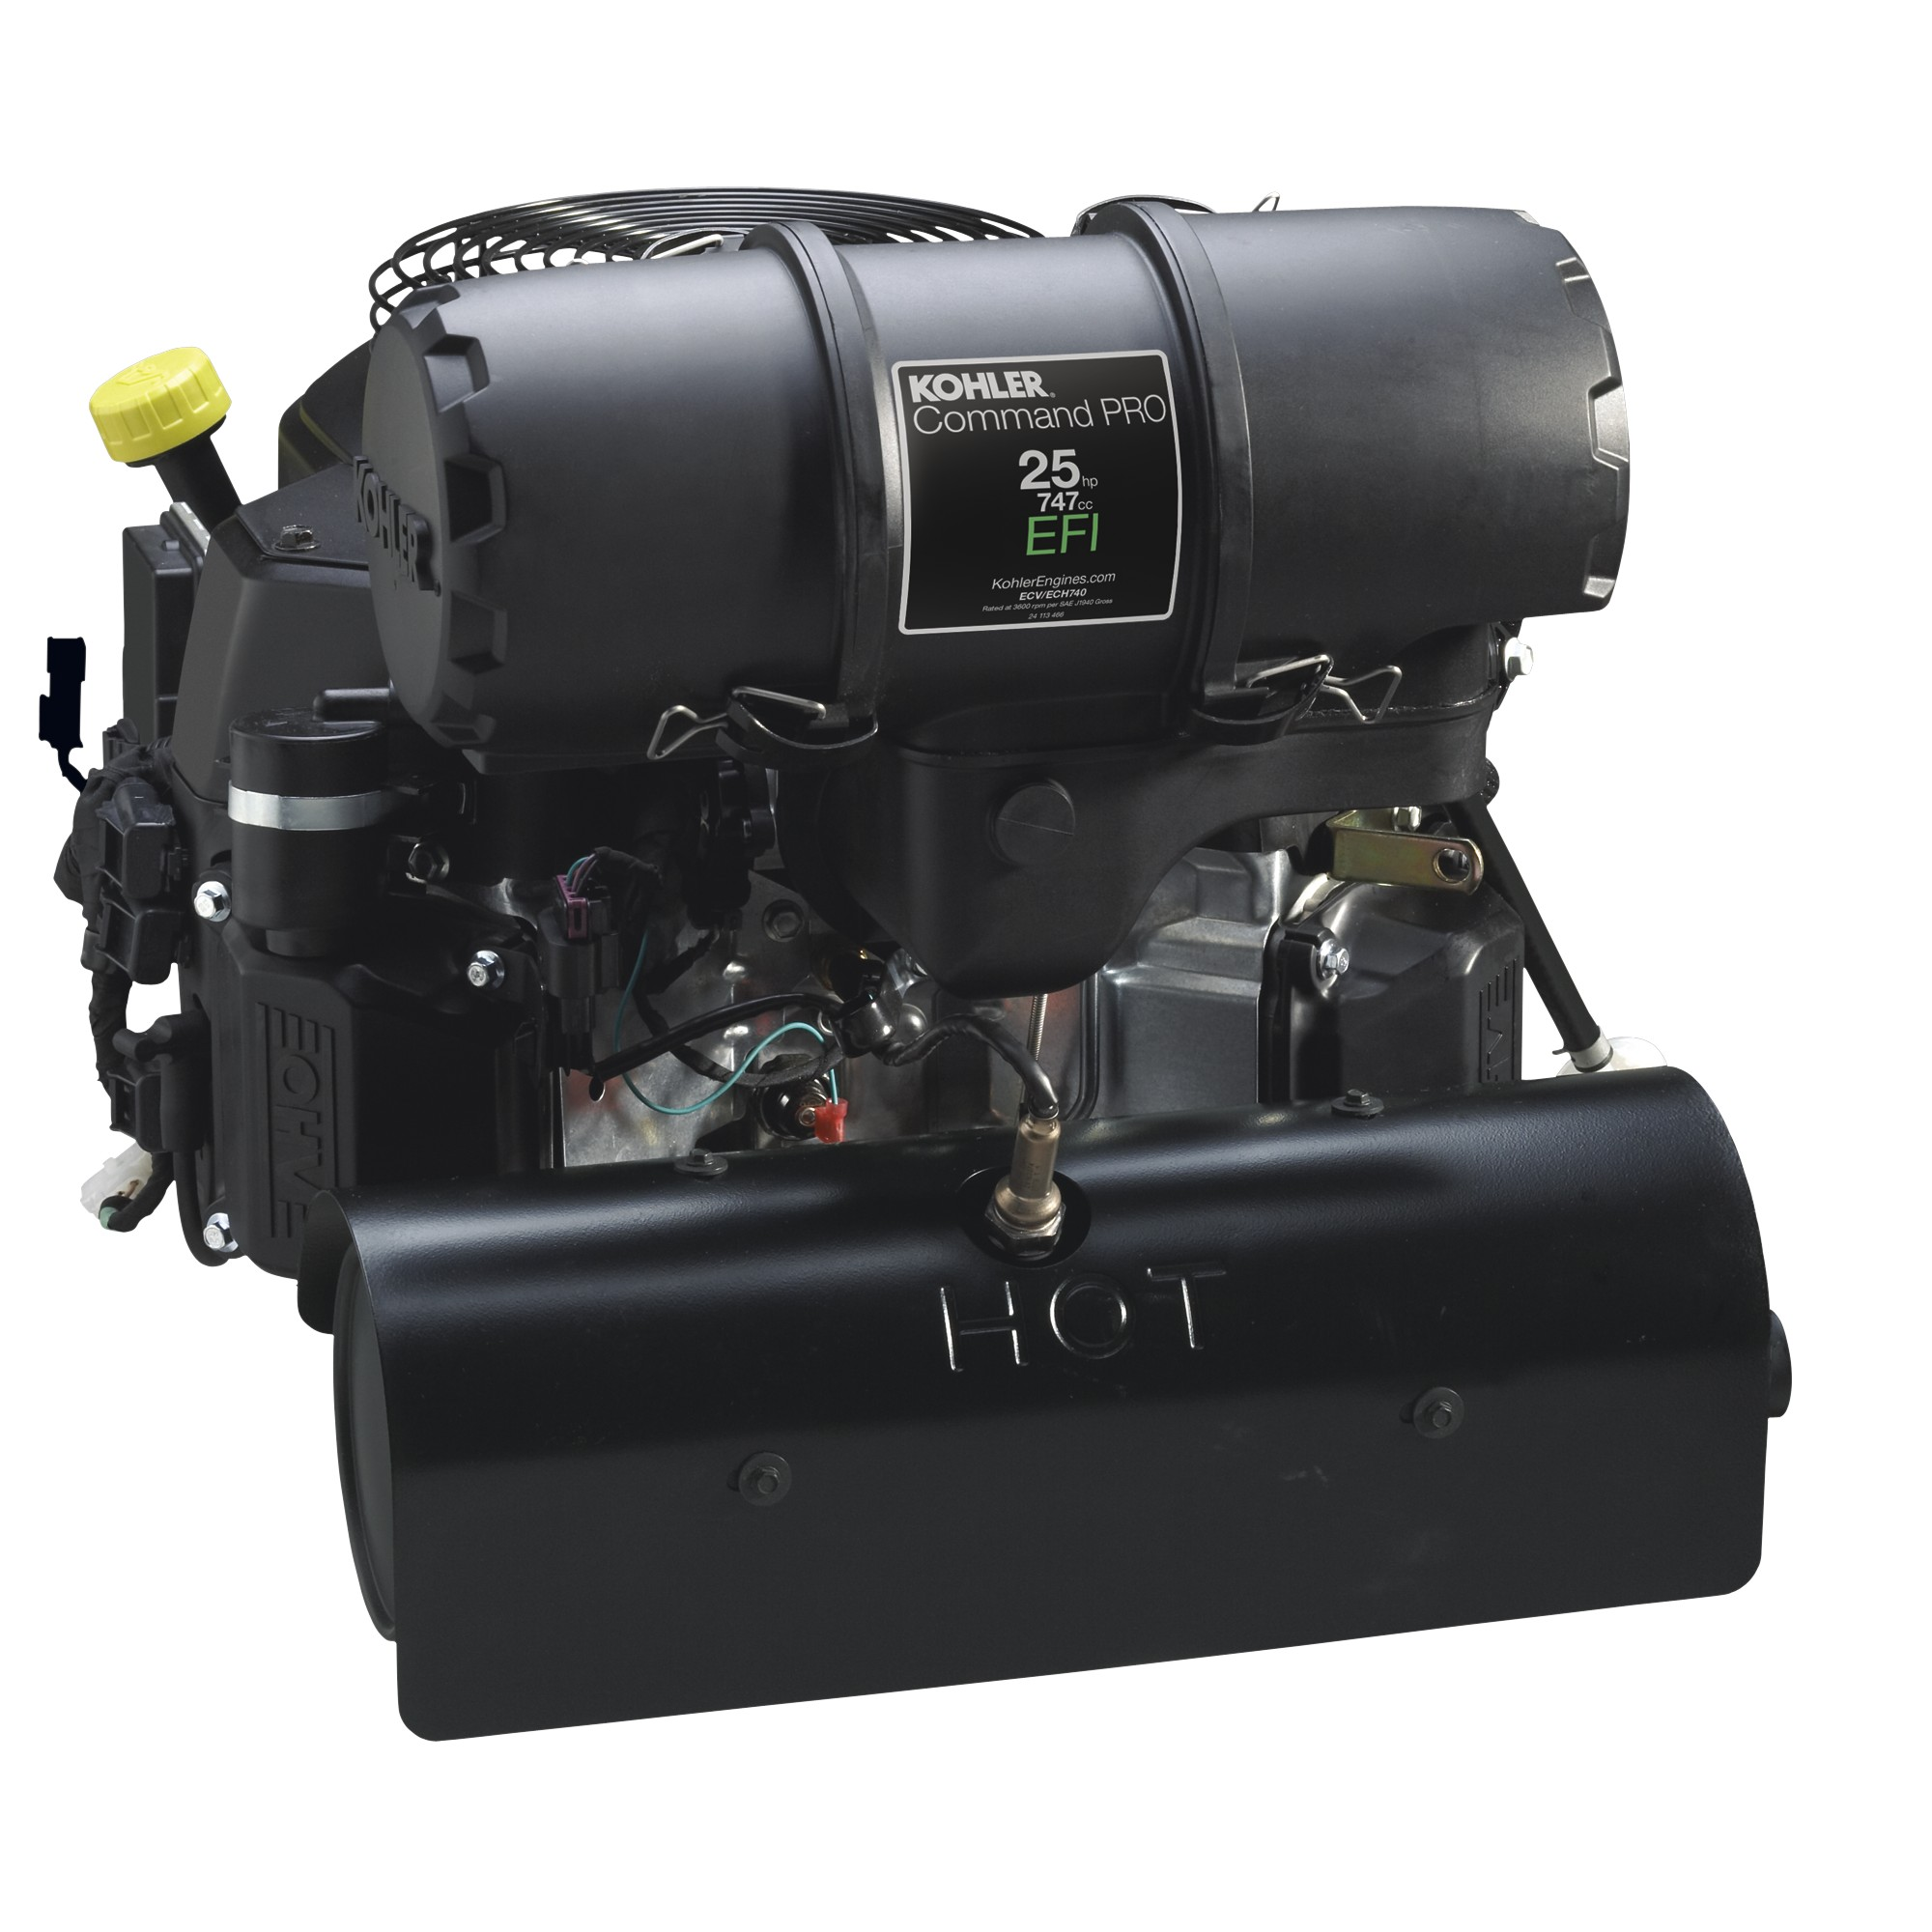 Kohler Cv740 With Variable Ignition Wiring Diagram 50 Command Pro 22 1 Source Engines Ecv740